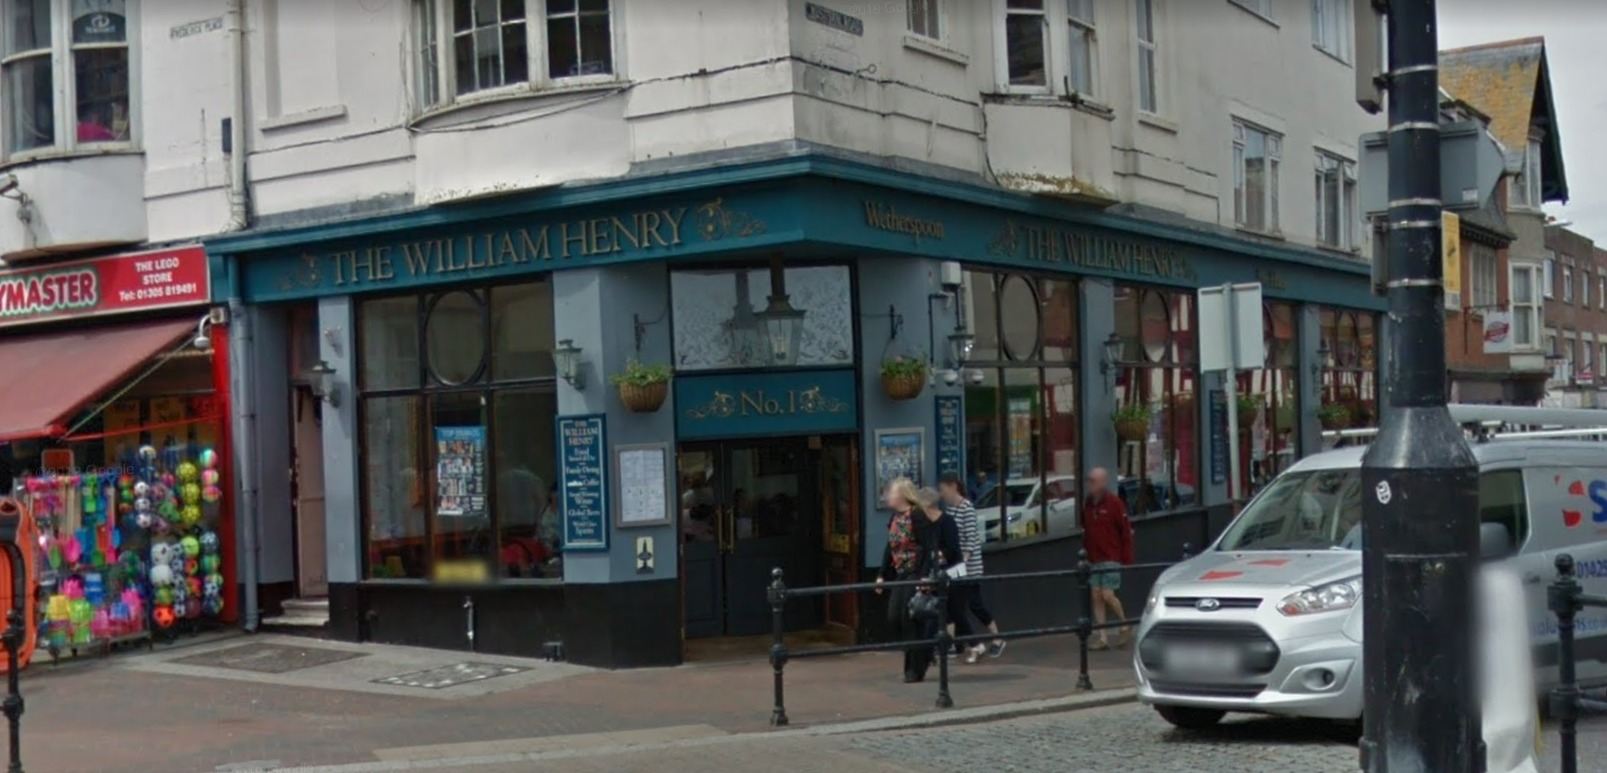 William Henry pub in Weymouth is planning a refurbishment